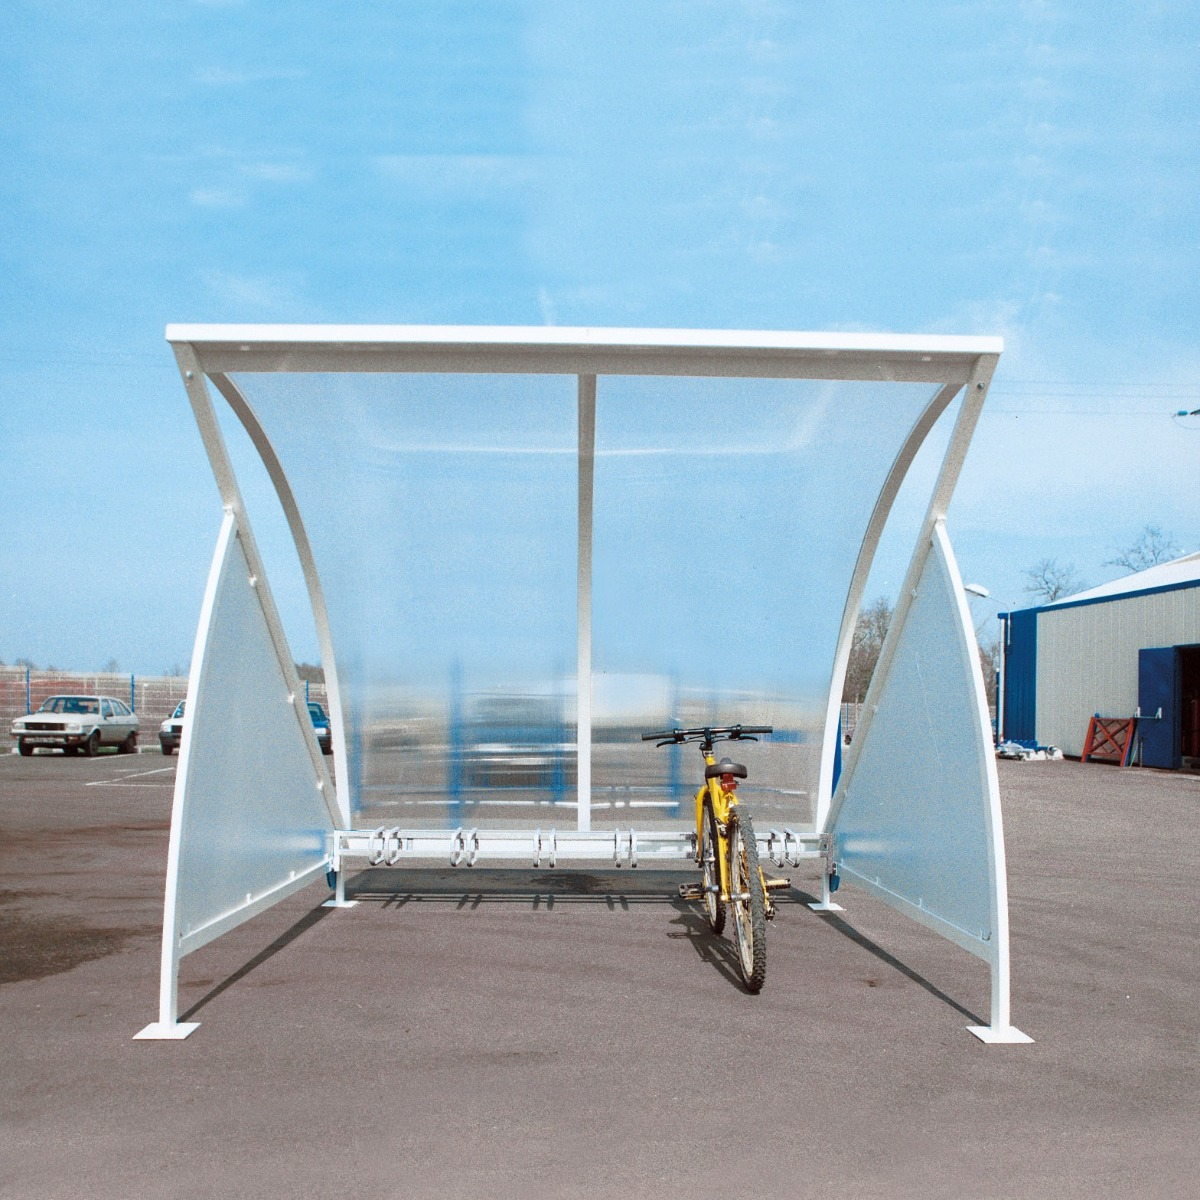 Moon Cycle Shelter